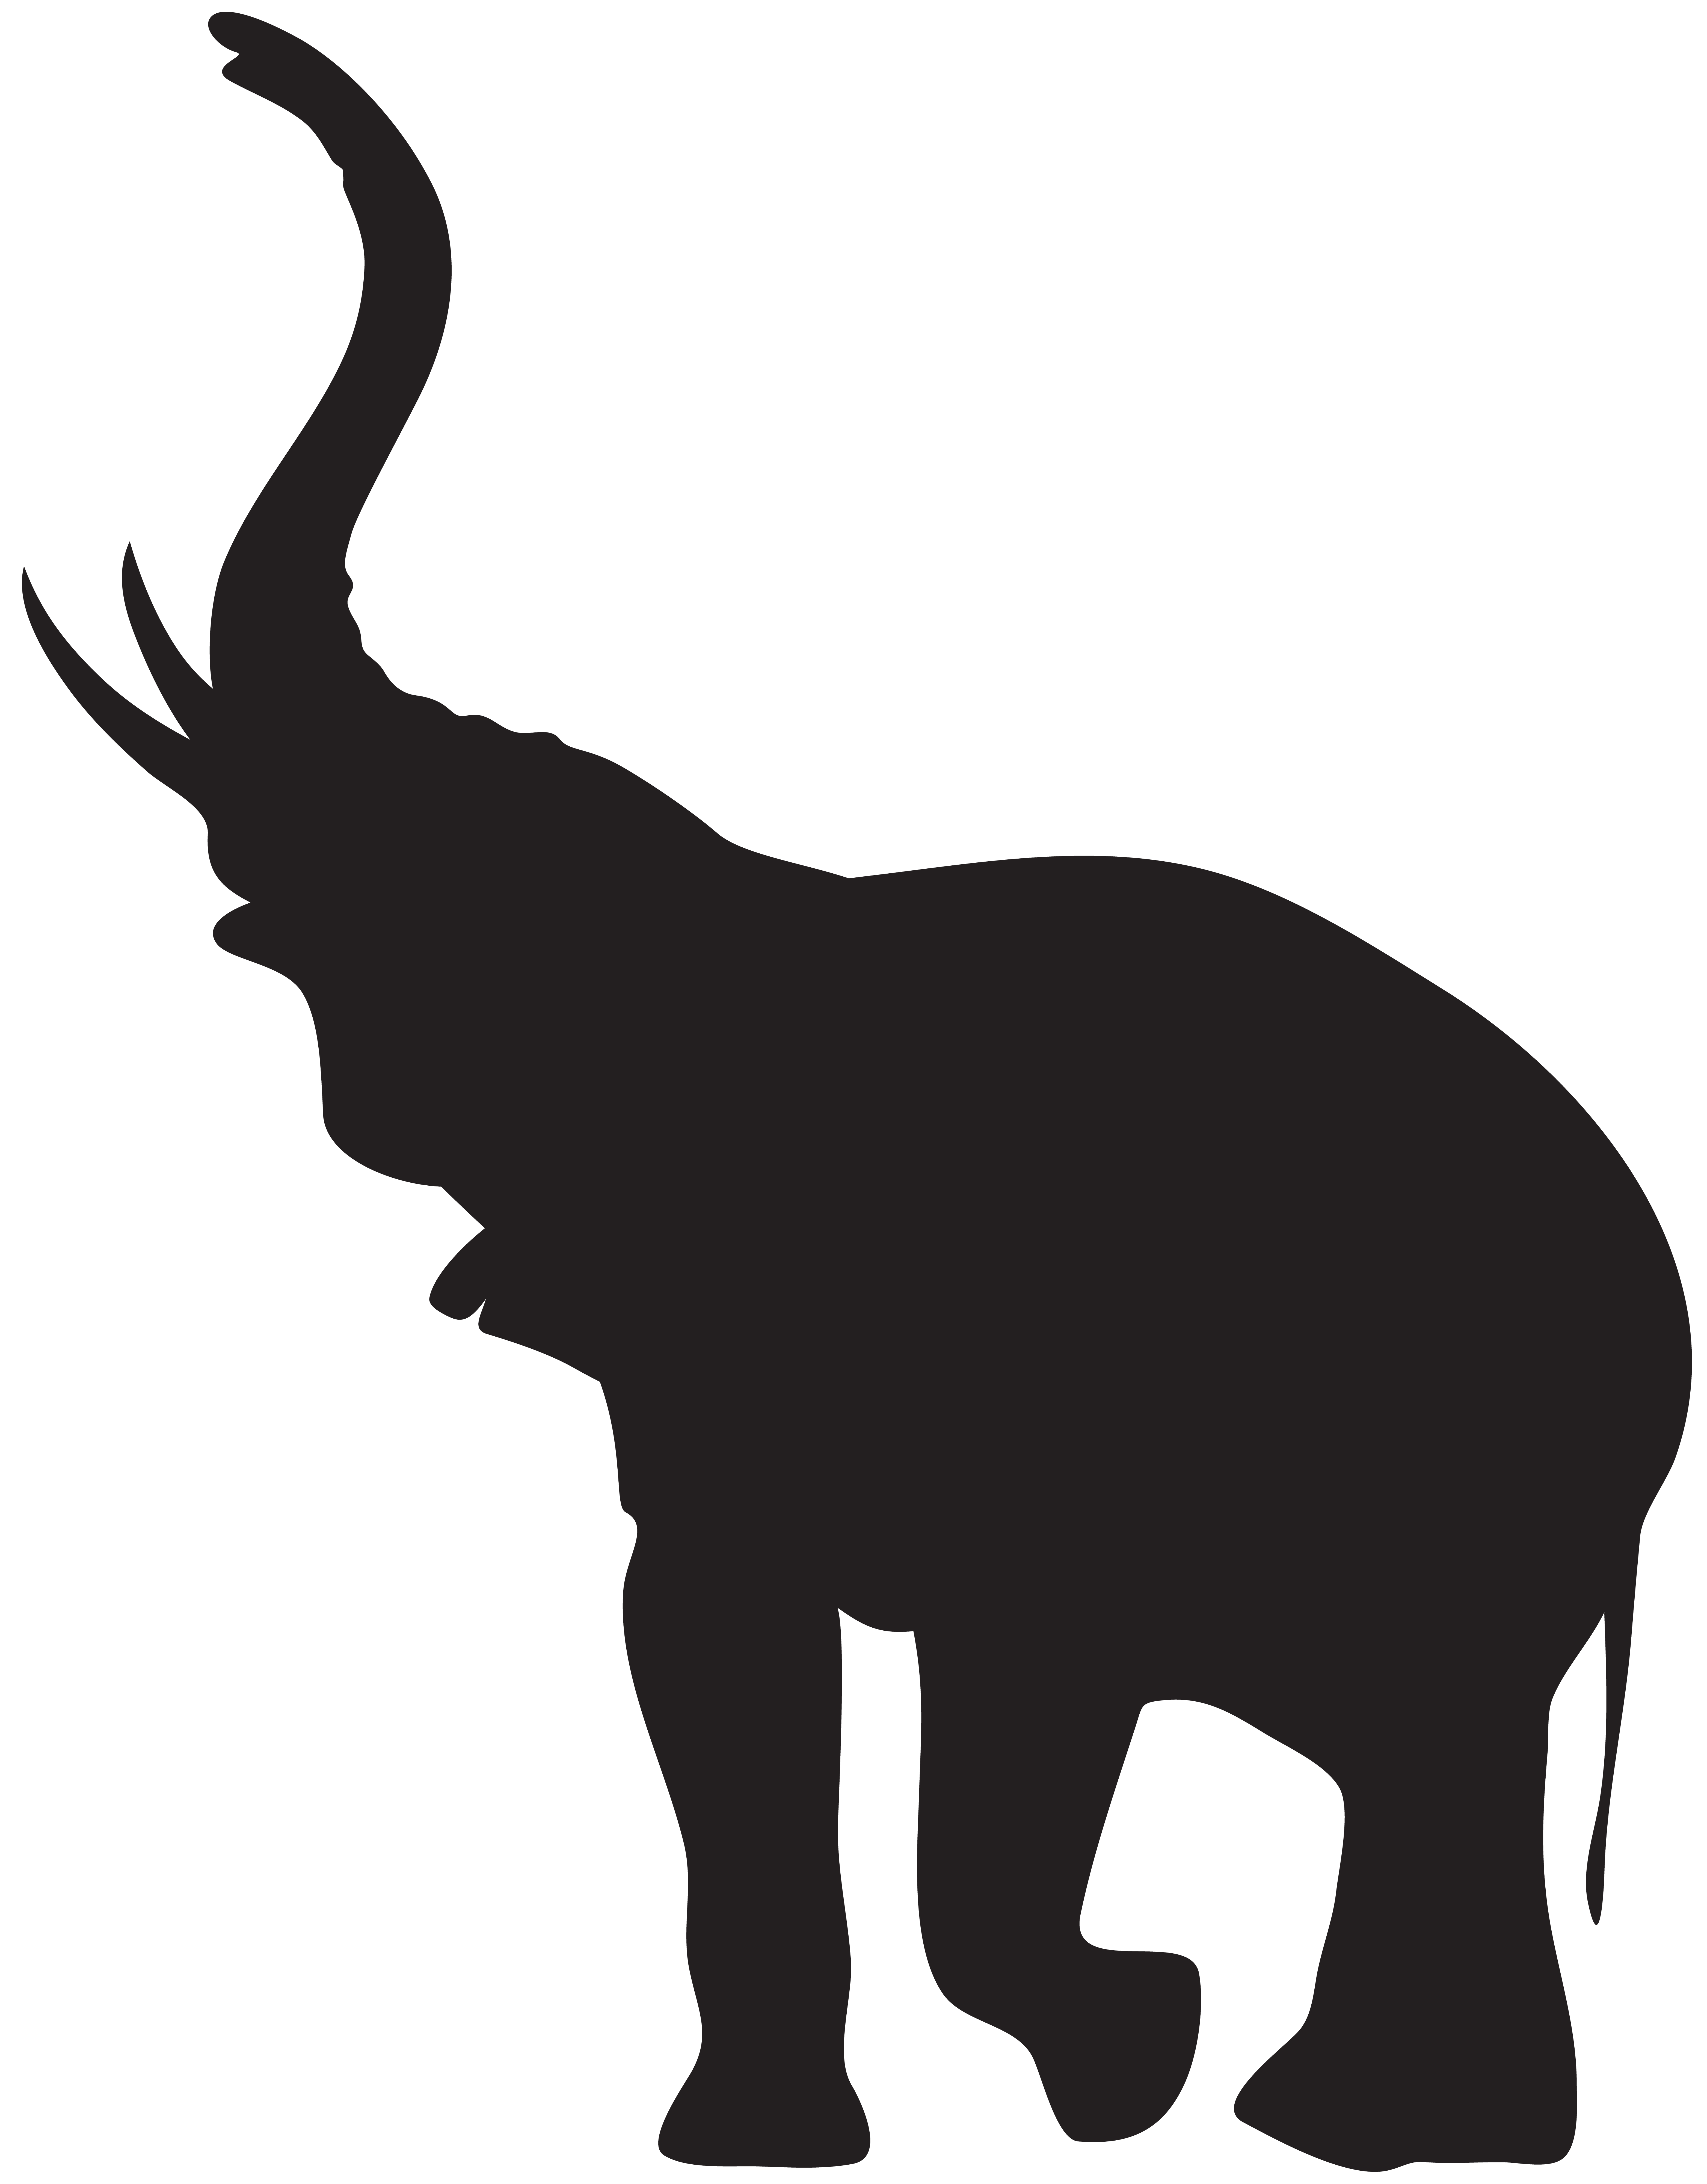 Hearts clipart elephant. Silhouette at getdrawings com